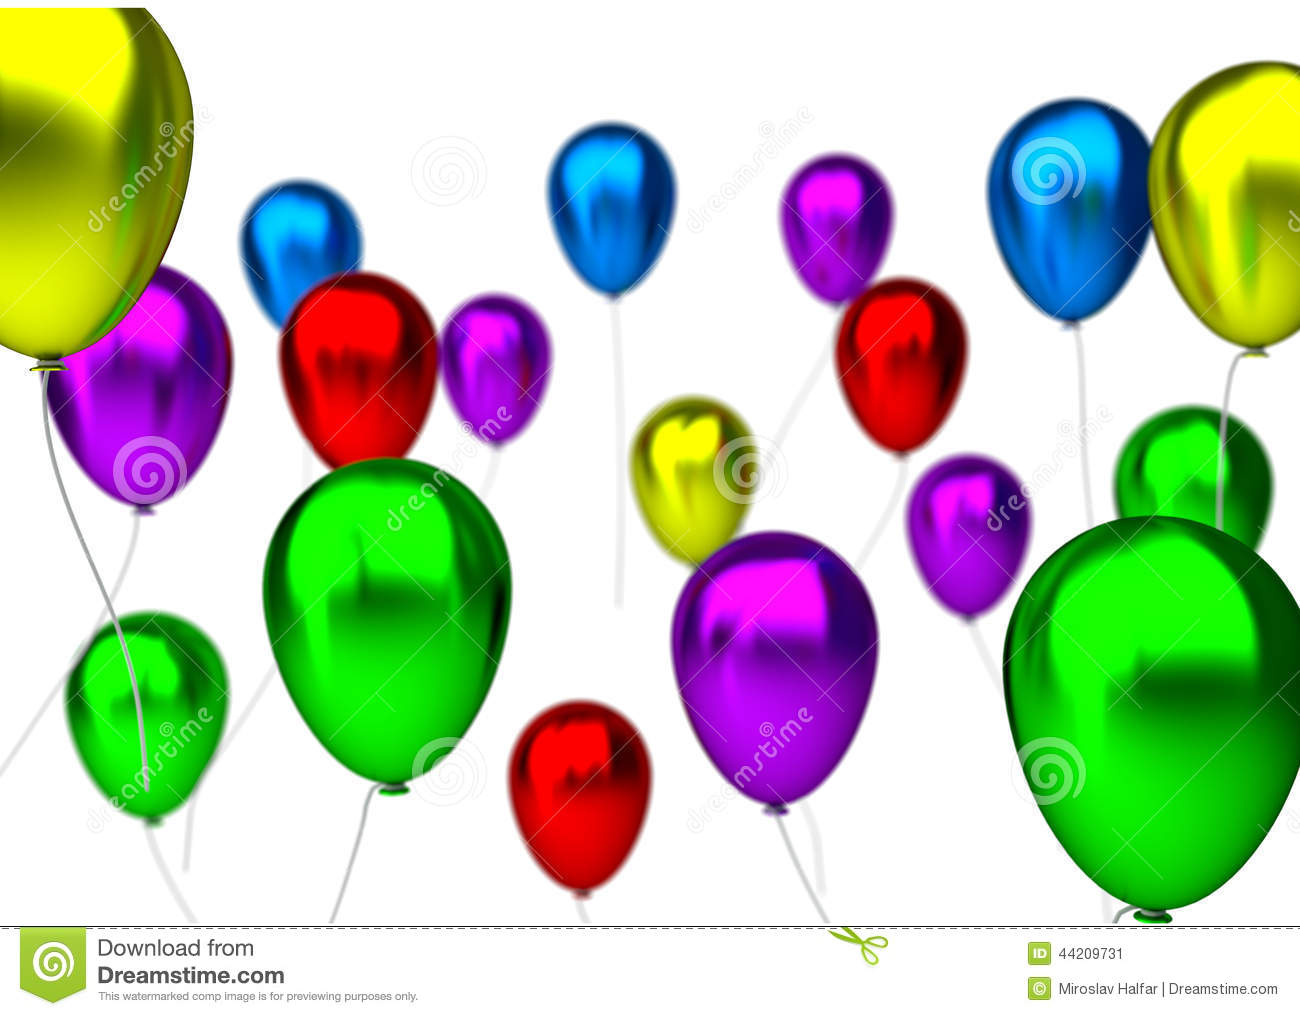 Green and blue balloons - Background Birthday Blue Colorful Green